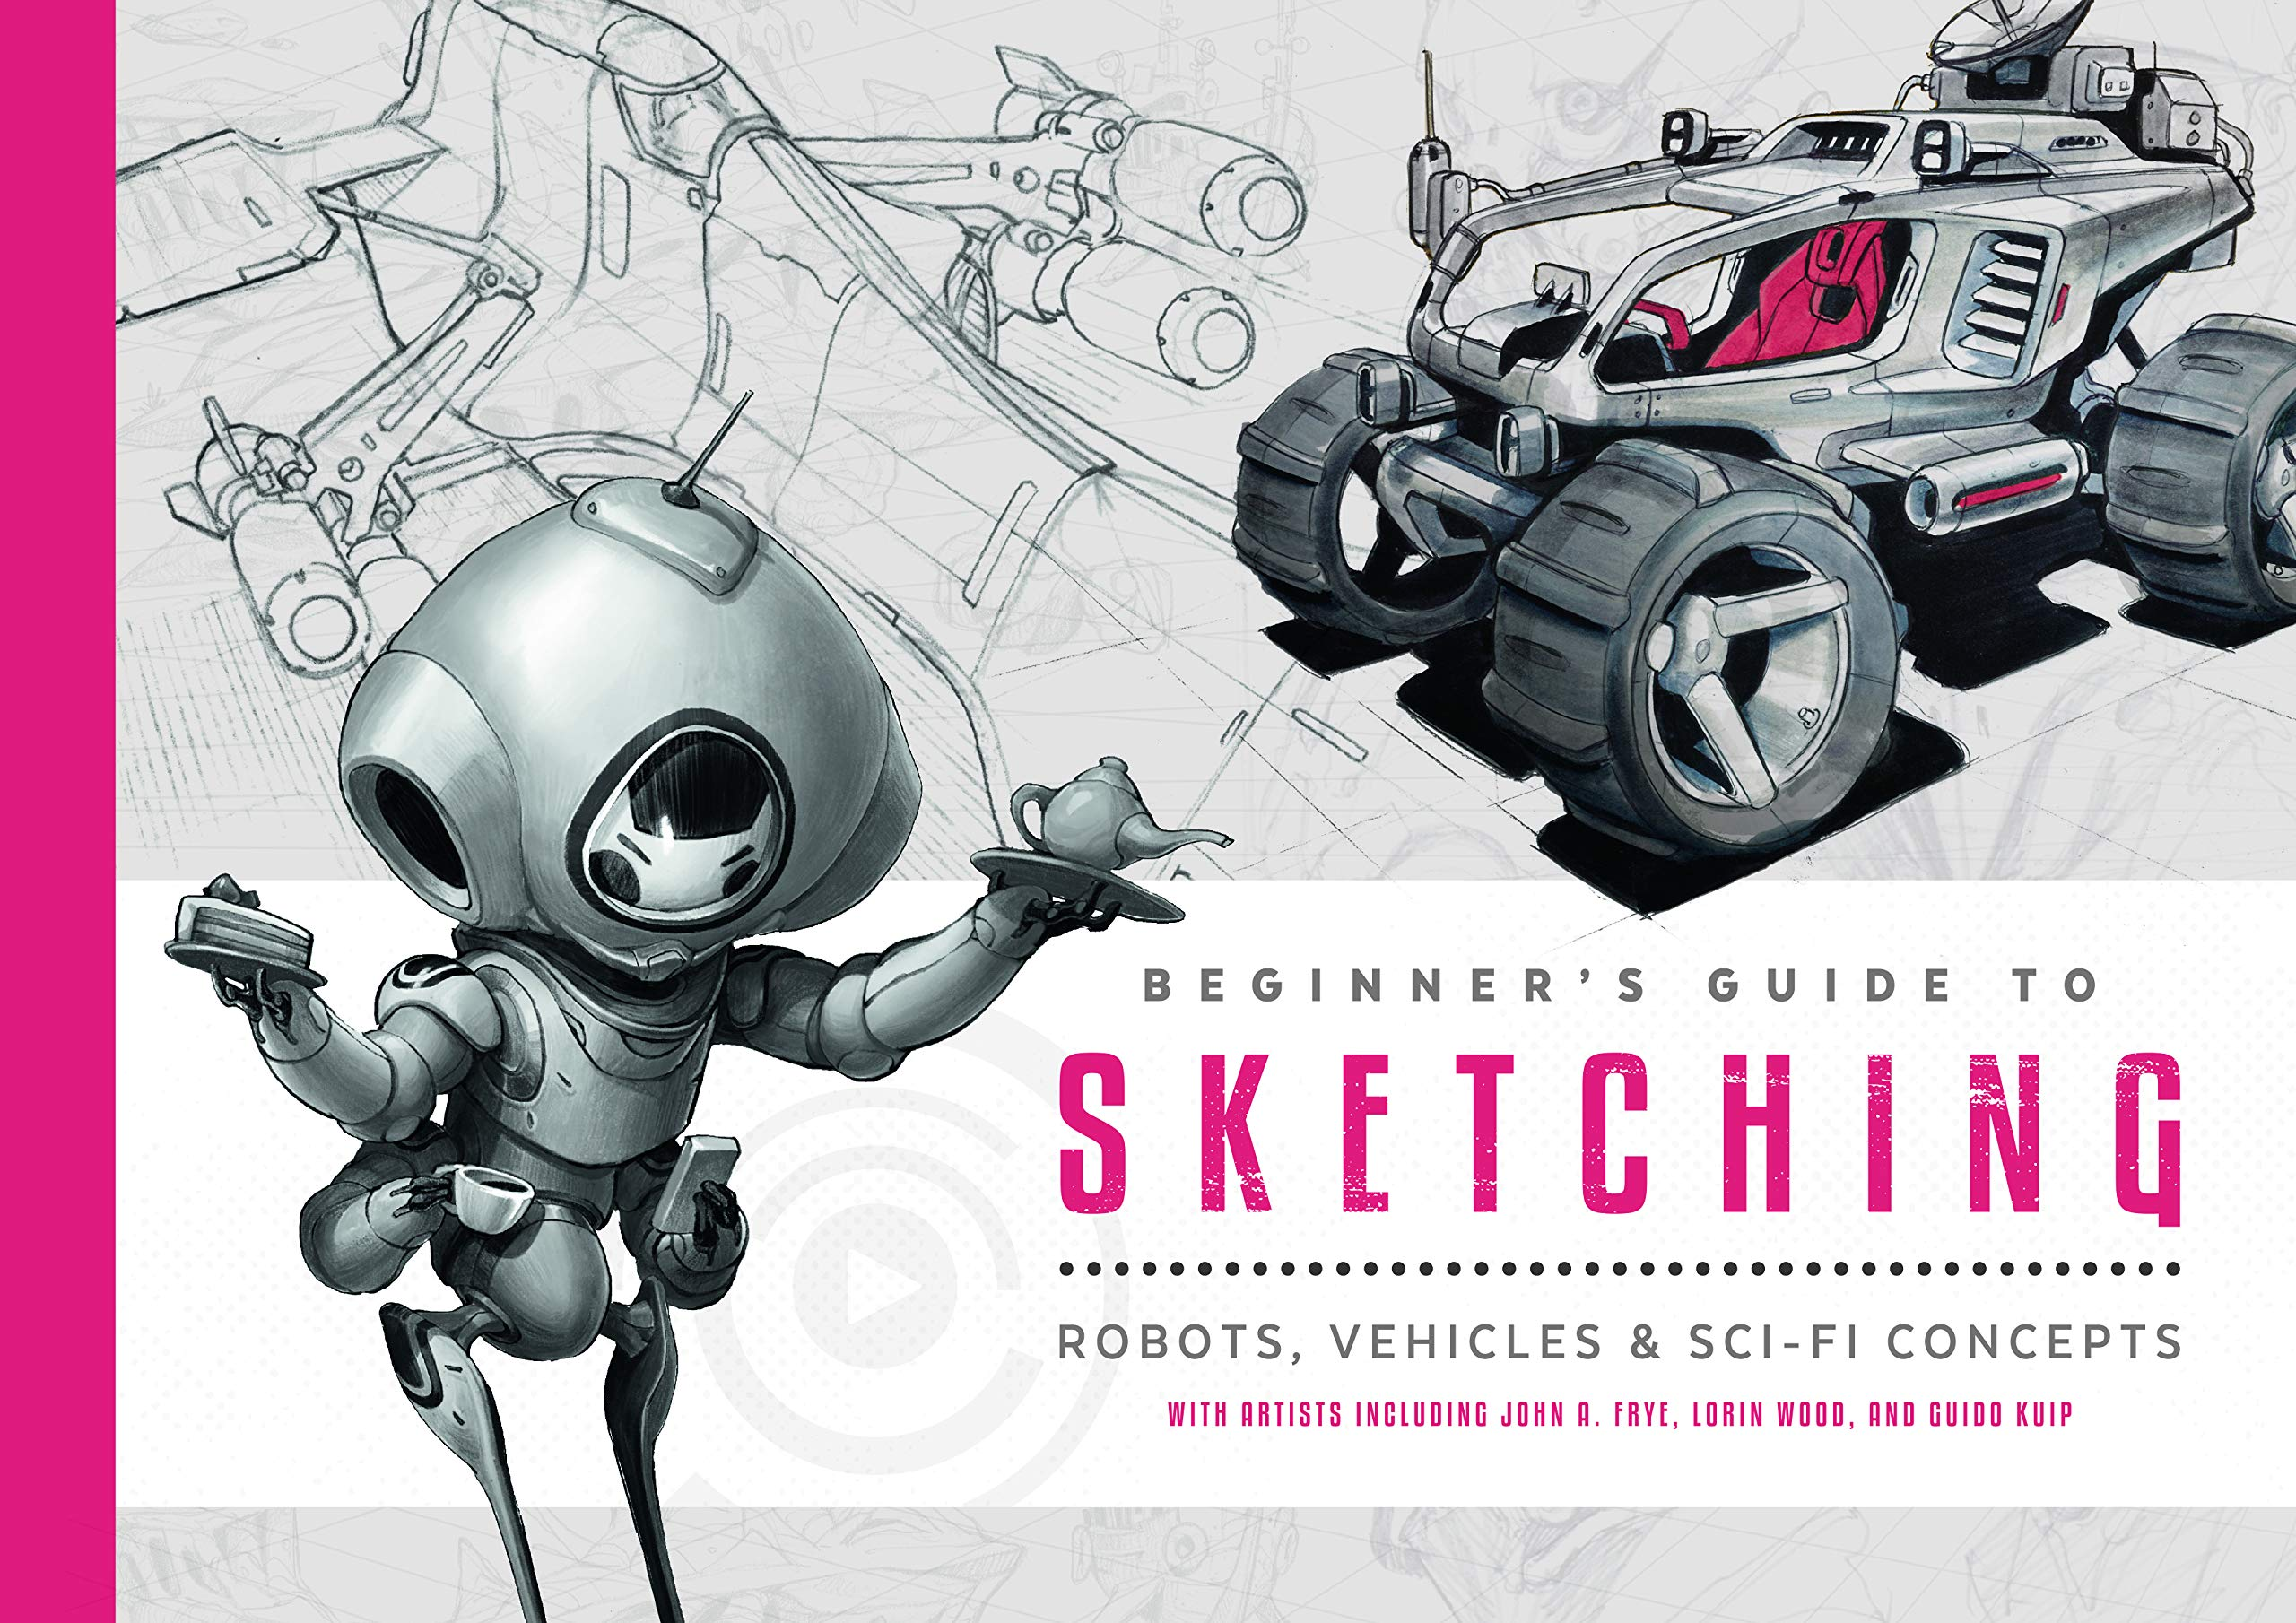 Download Beginner's Guide To Sketching: Robots, Vehicles & Sci-fi Concepts 